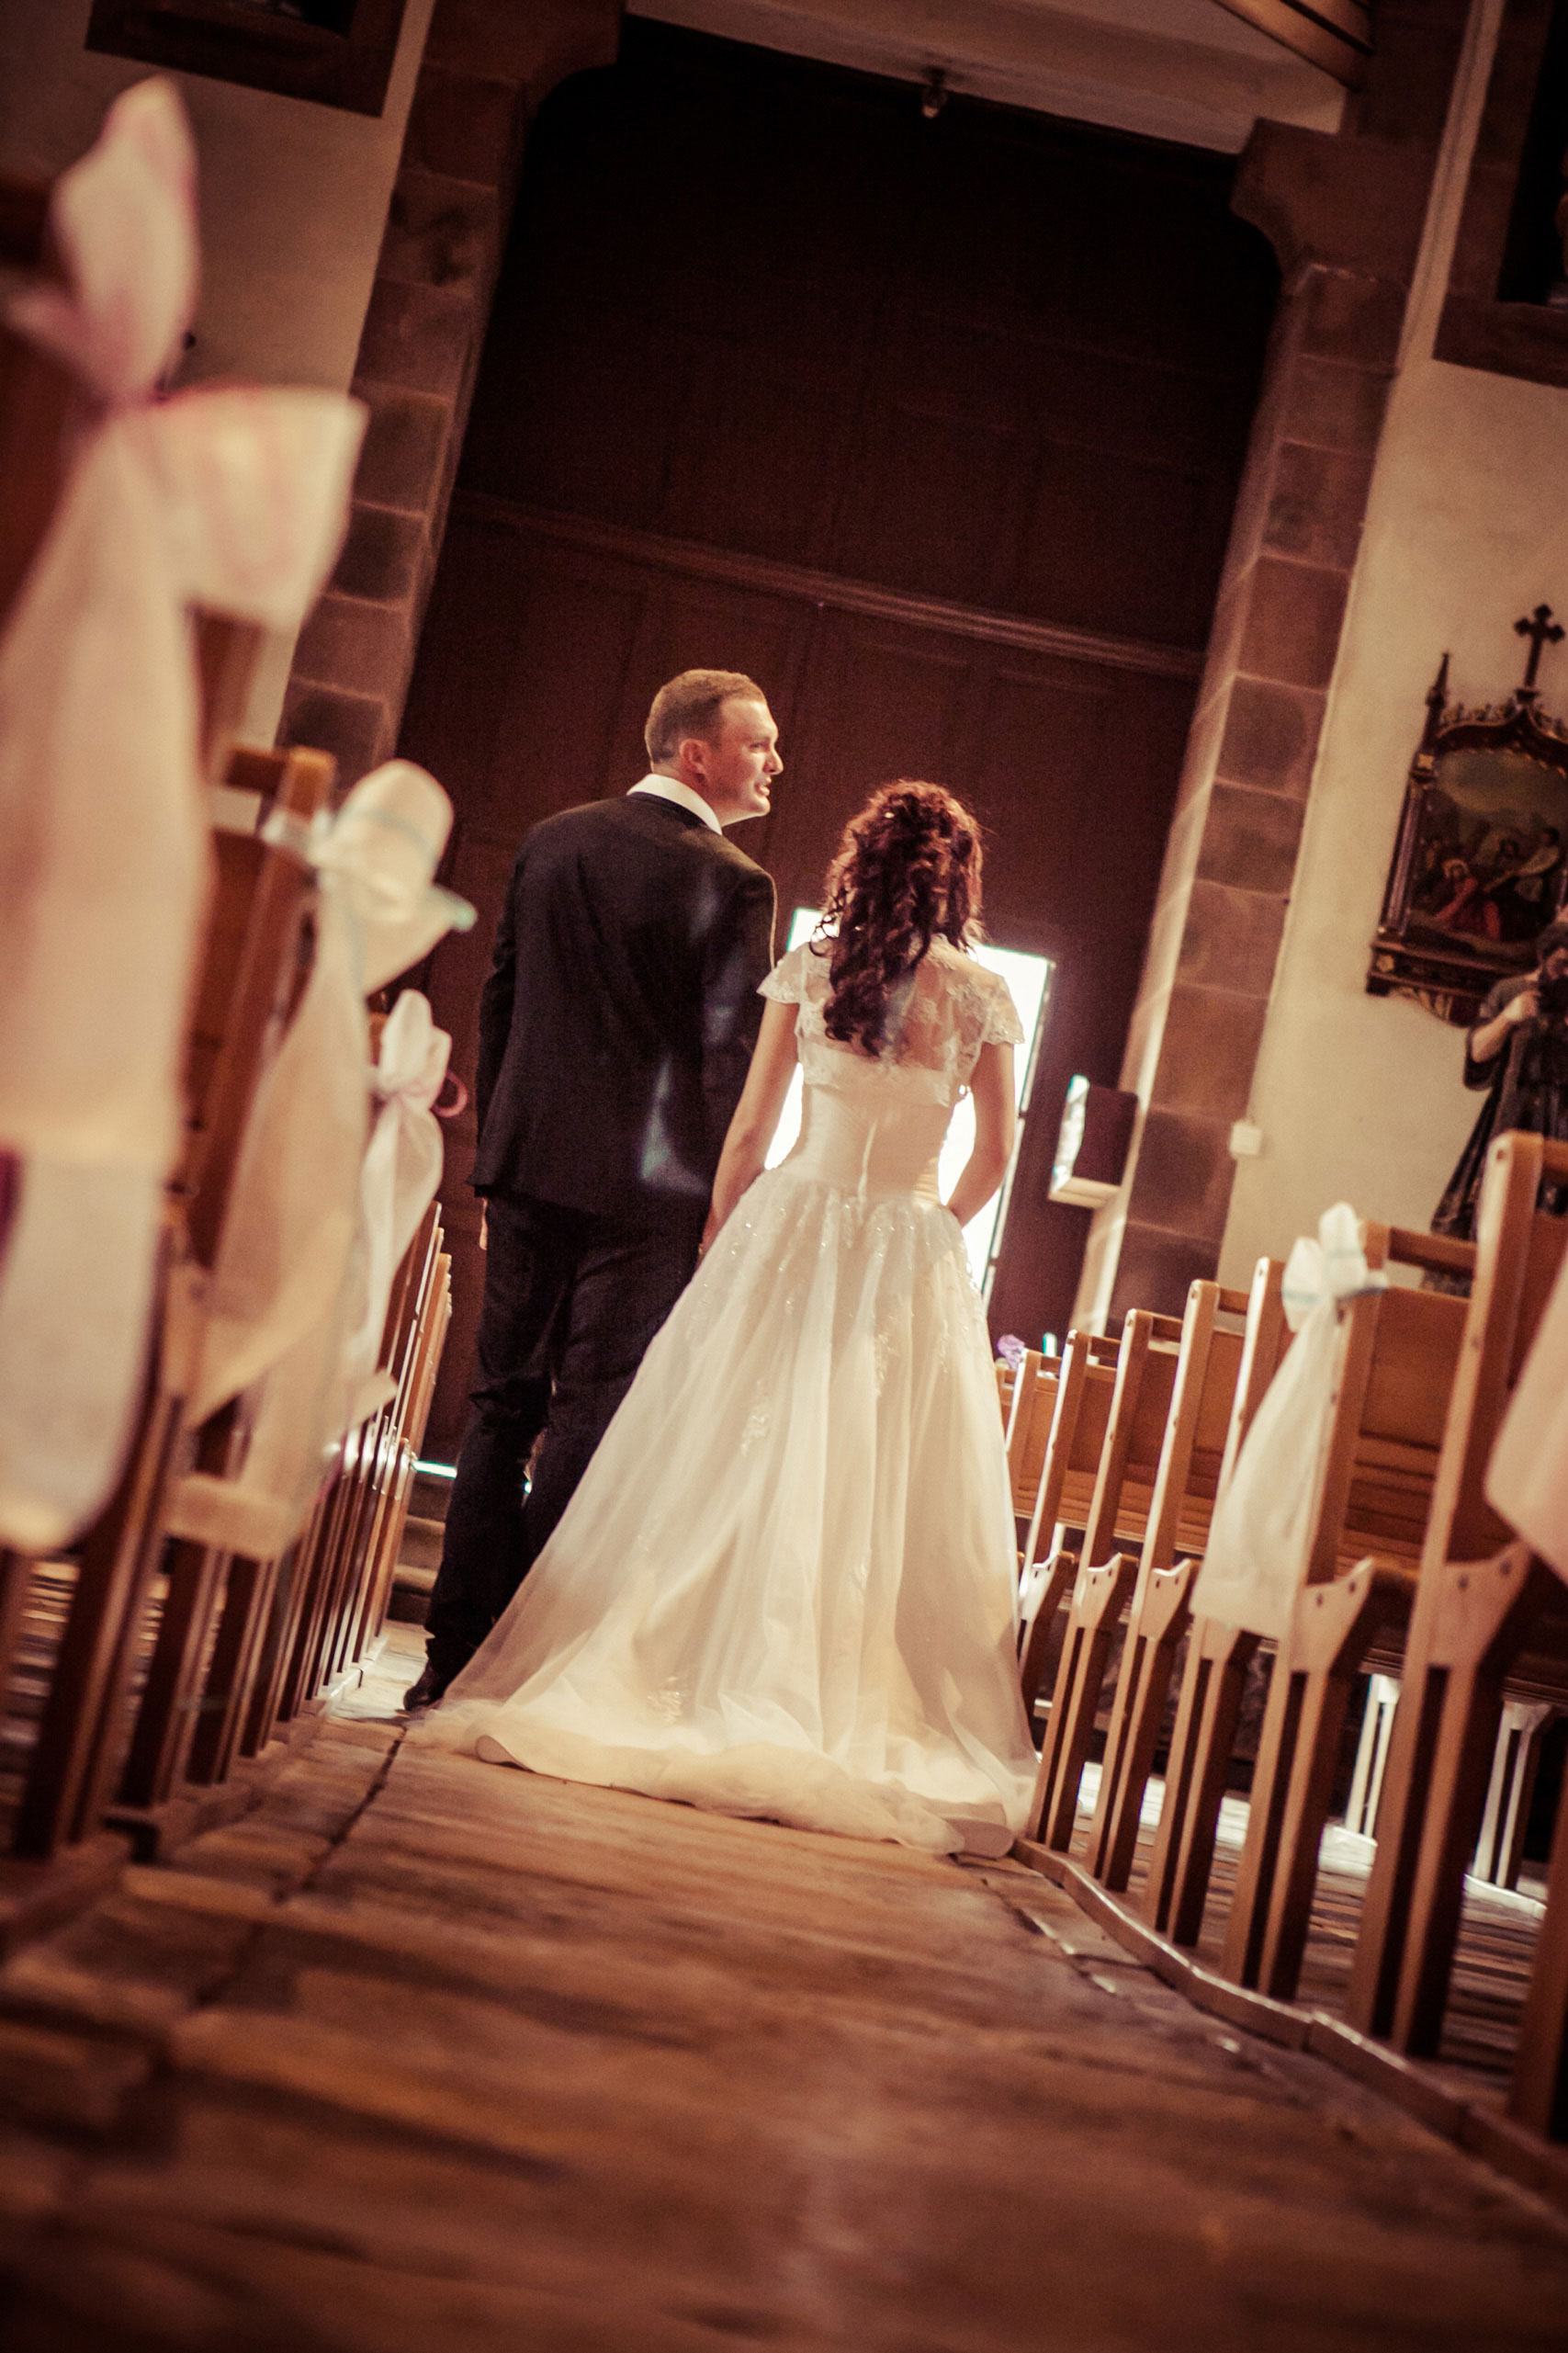 Mariage Video Photo Herault Rouergue Aveyron Tarn